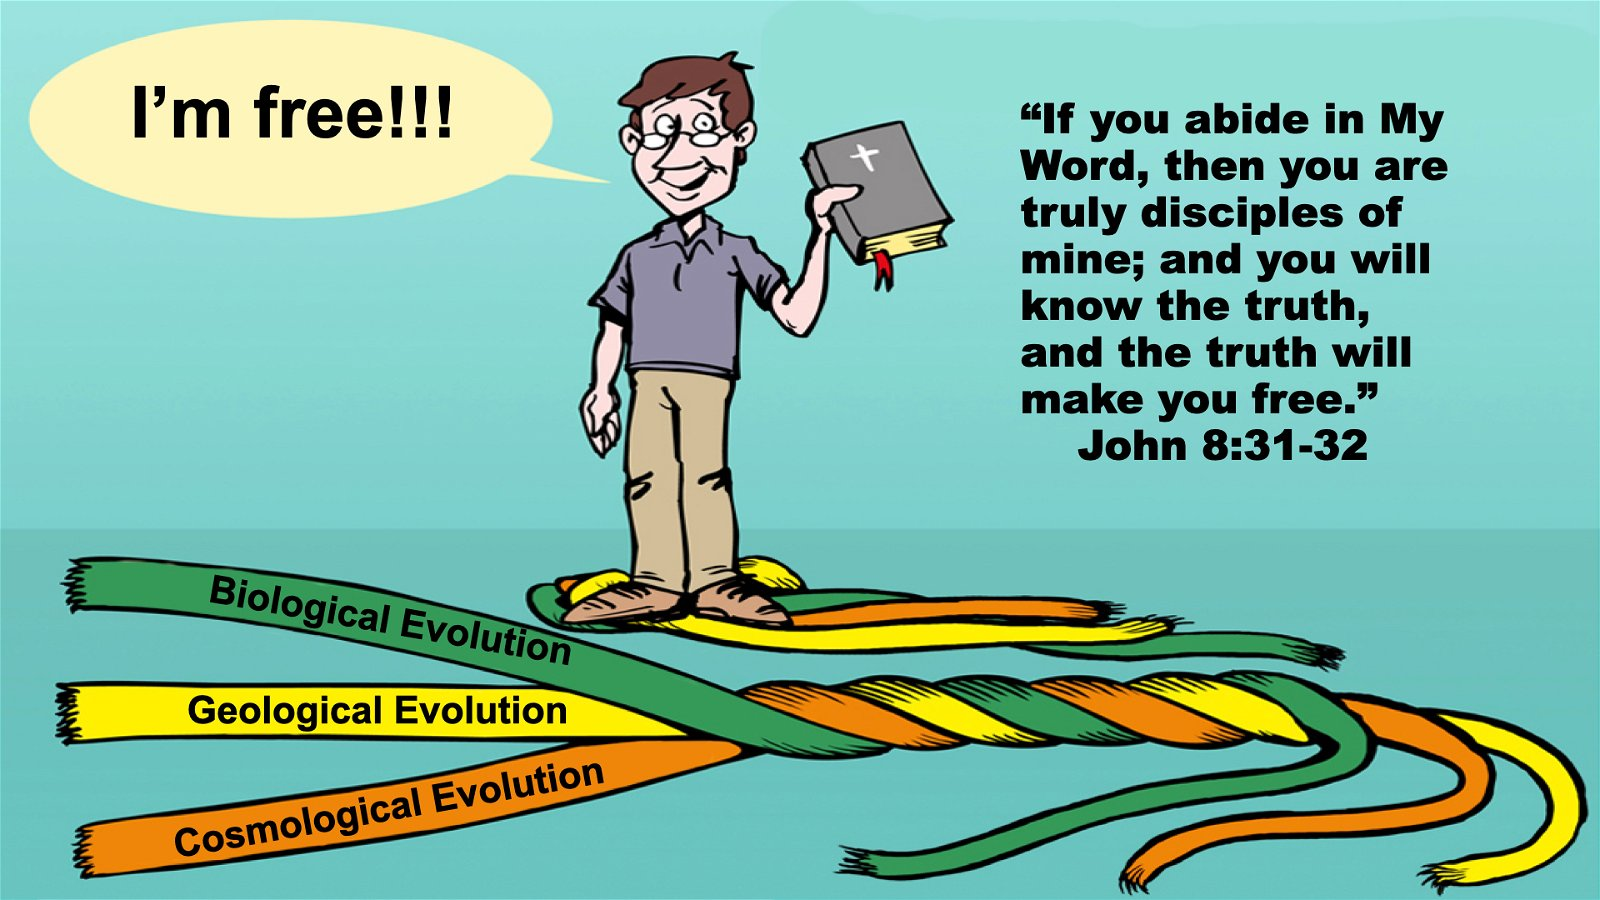 Young-earth creationist